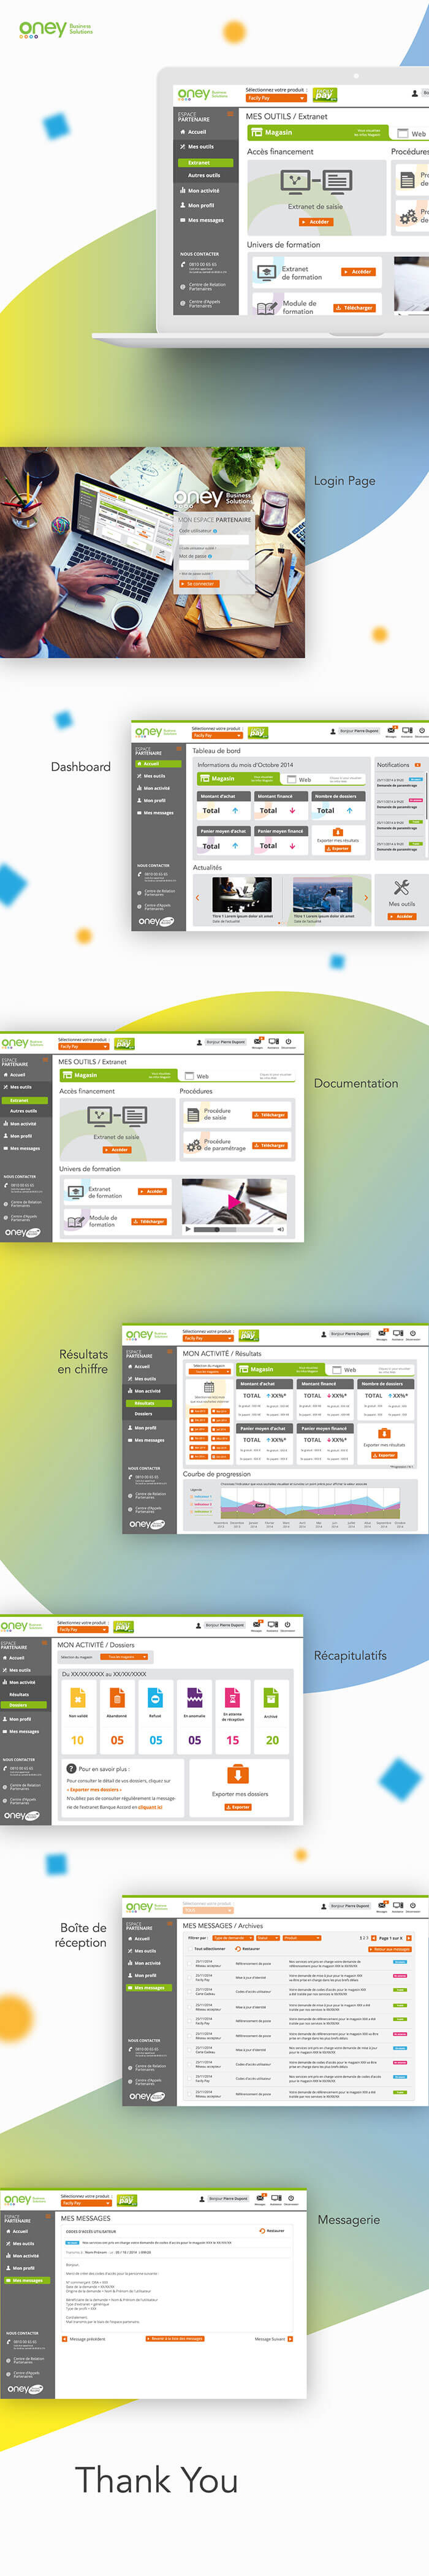 ui ux webdesign extranet oney banque accords